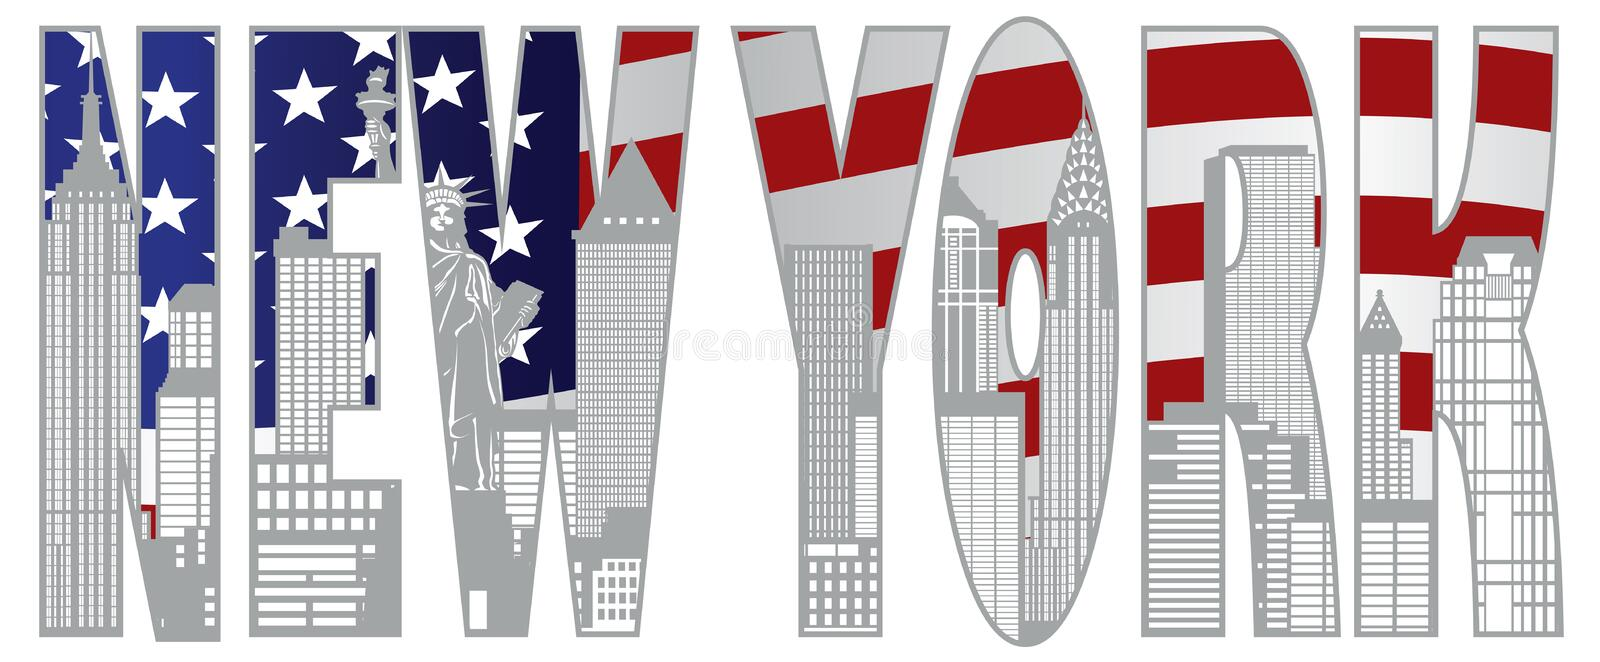 New York City Skyline Text Ooutline Vector Illustration royalty free illustration